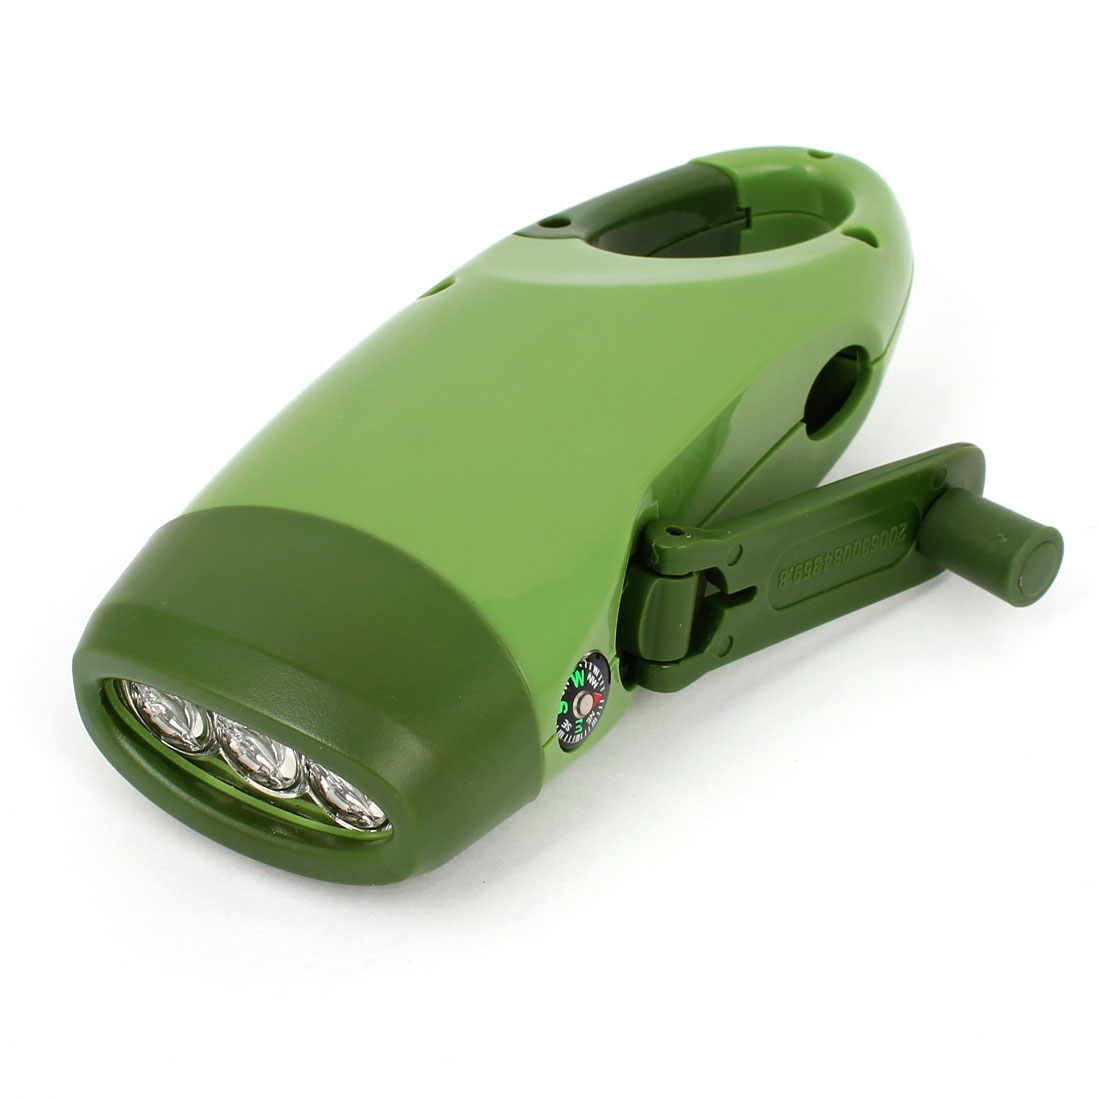 Outdoor Camping Green Plastic Housing White Light Hand Crank Compass LED Torch Flashlight Solar Dynamo Phone Charger